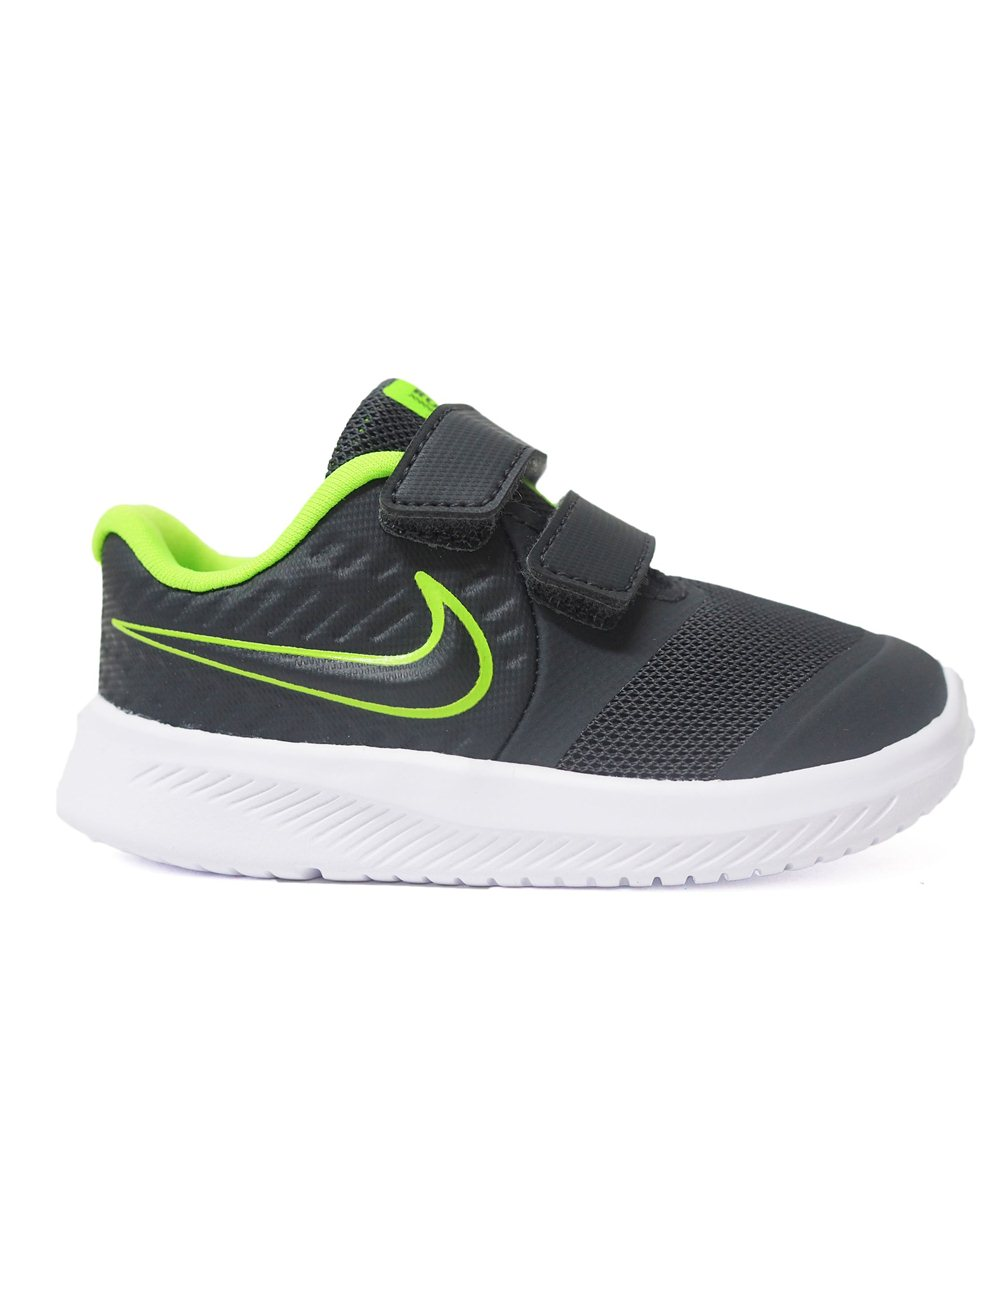 Zapatillas Nike Star Runner AT1803-004